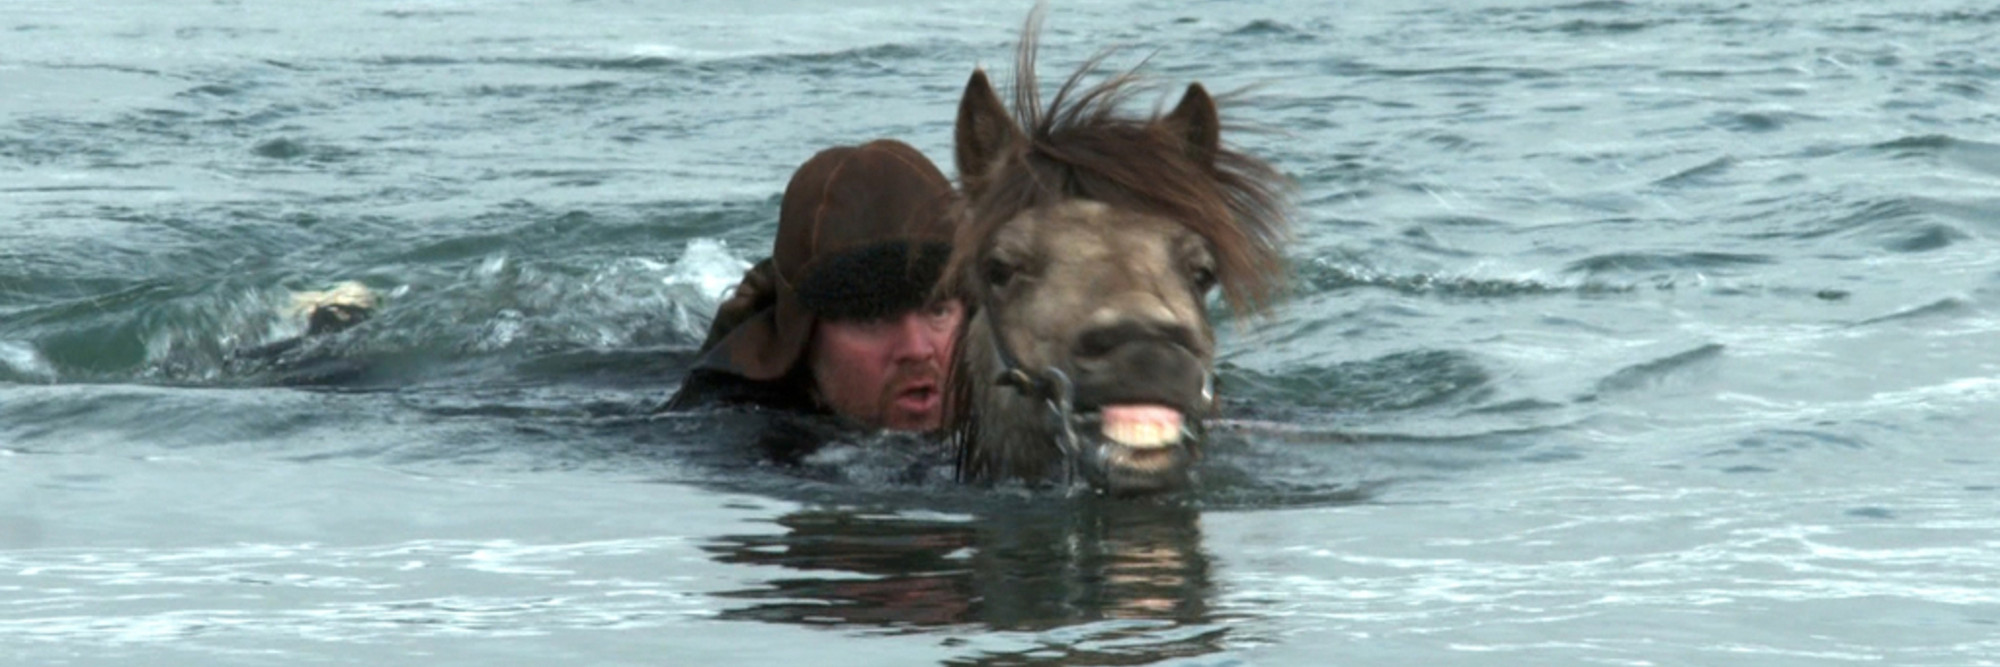 Of Horses and Men. 2013. Iceland. Directed by Benedikt Erlingsson. Courtesy Music Box Films